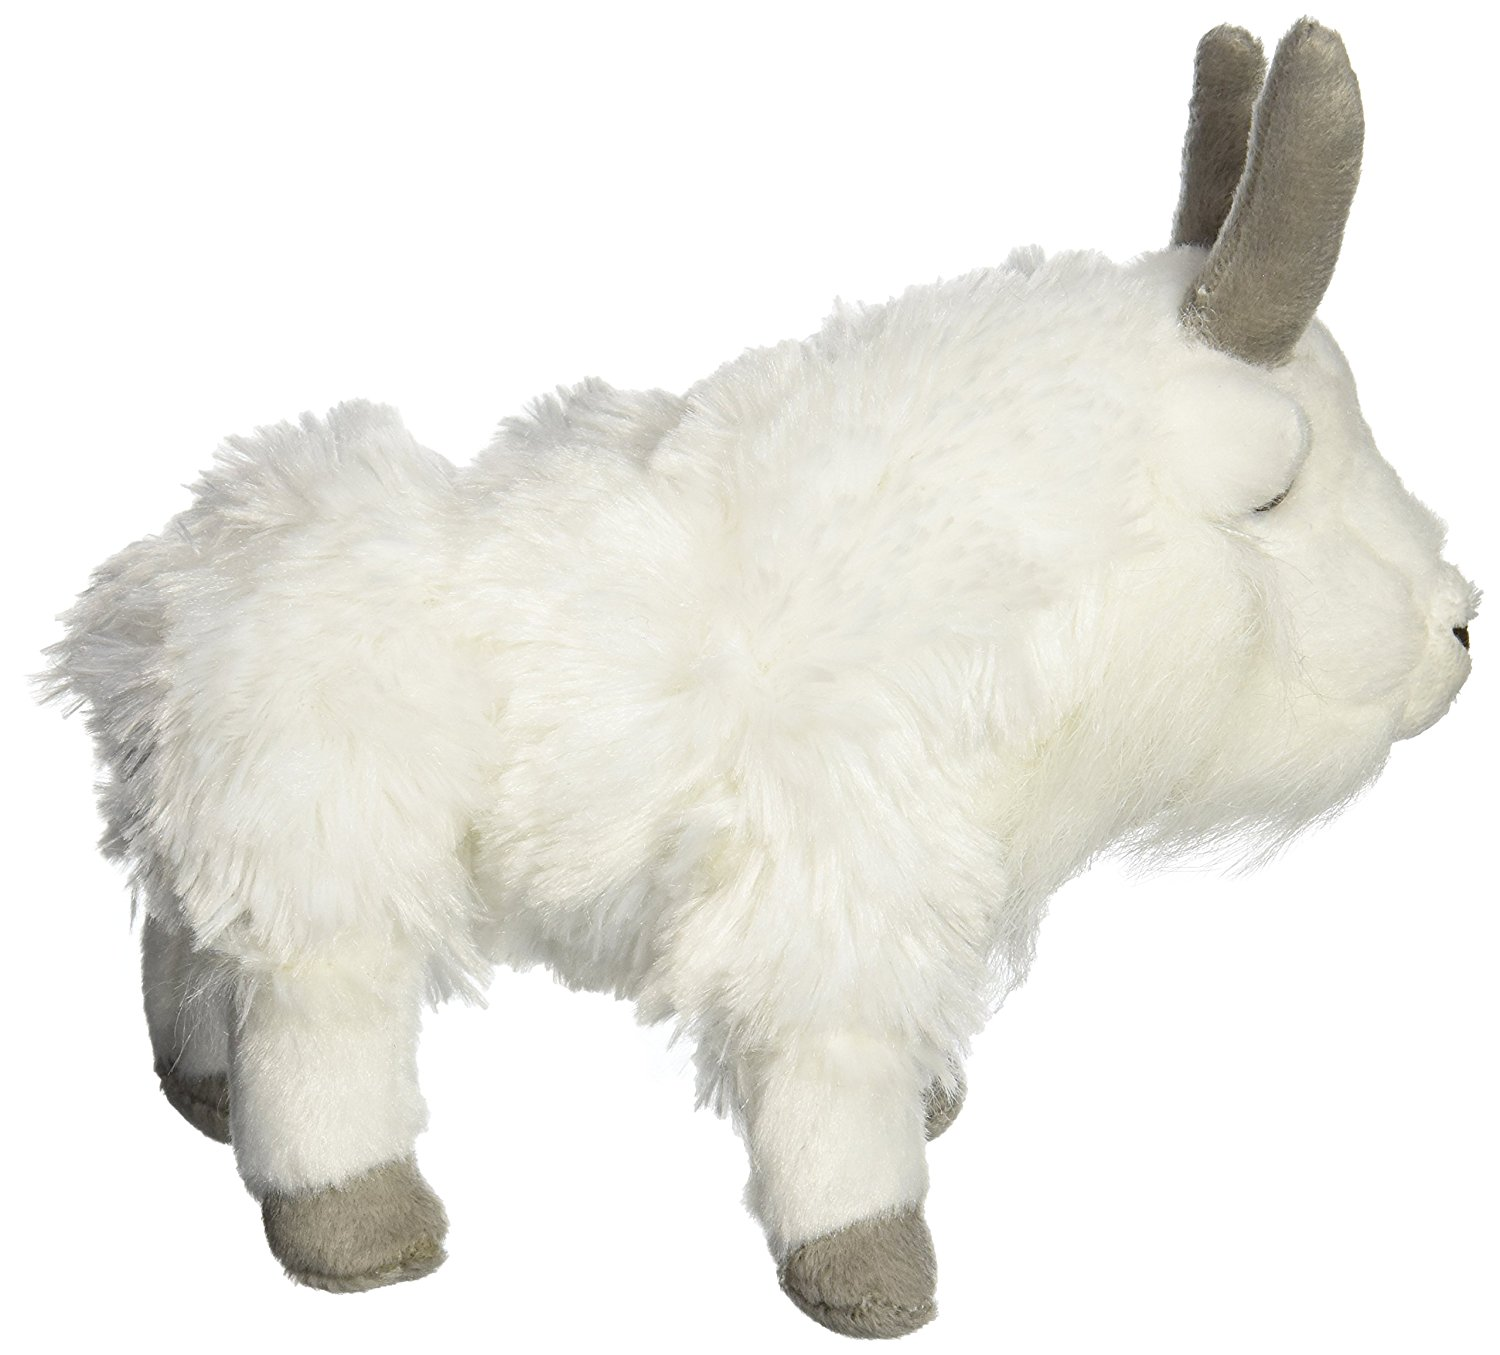 Amazon.com: Wild Republic Mountain Goat Plush, Stuffed Animal, Plush ...